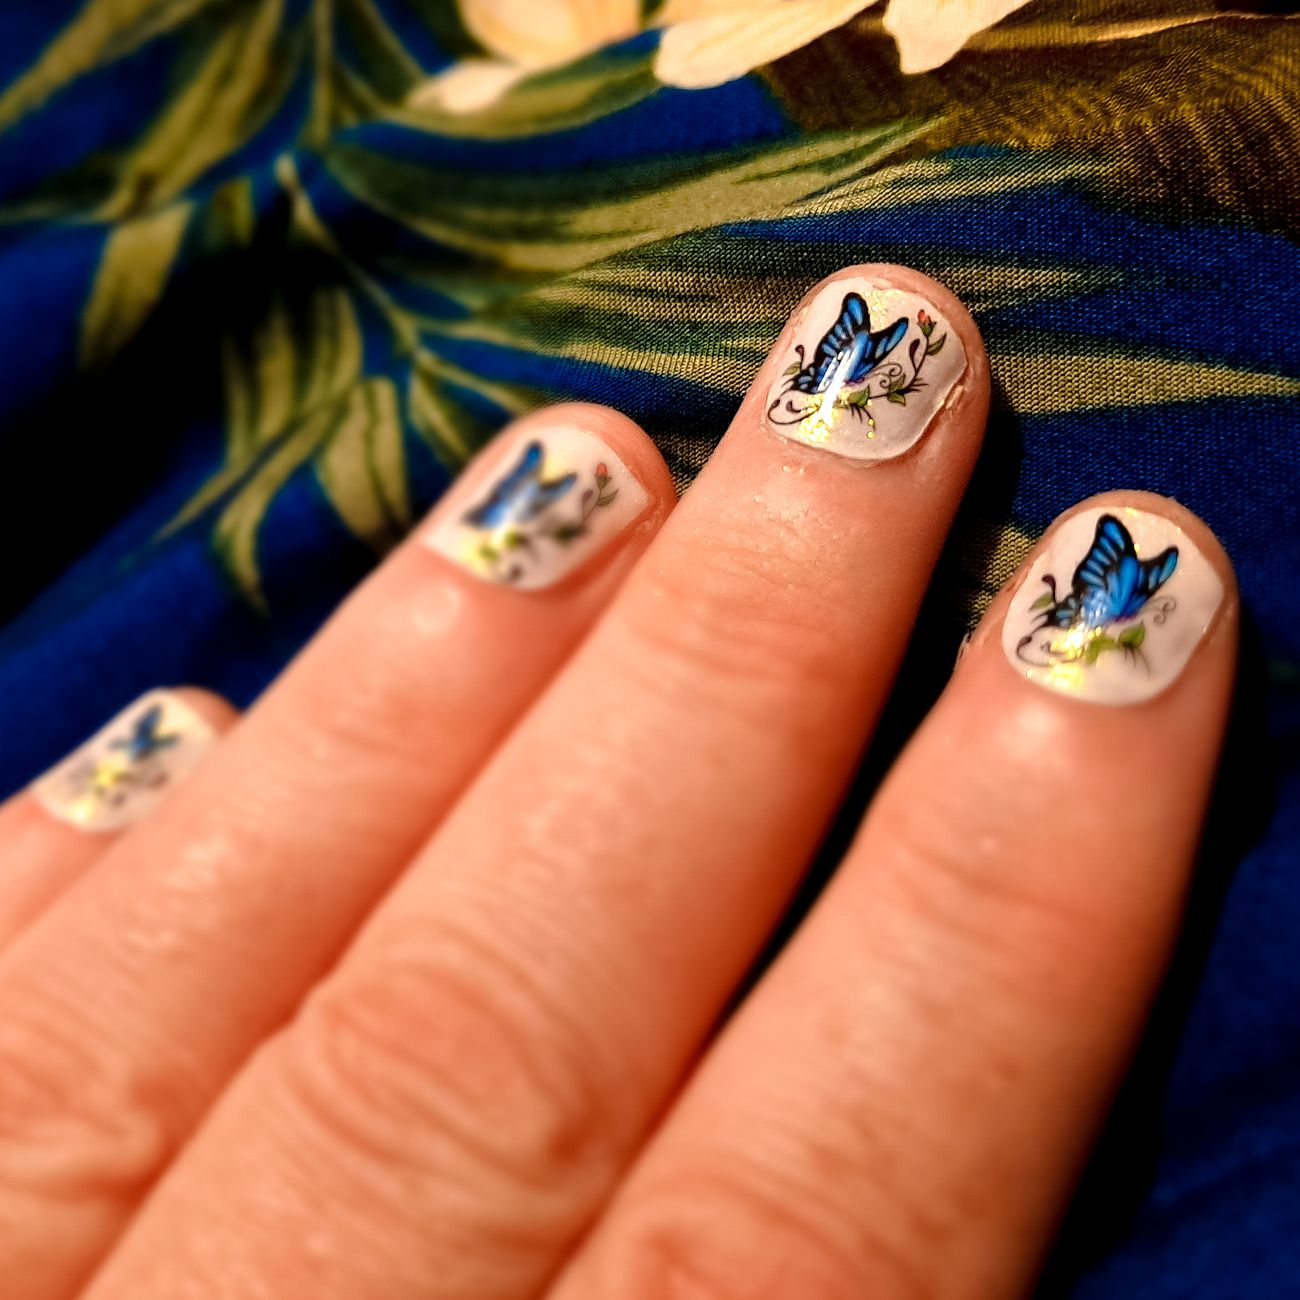 Sharing some creative nail designs with ColorStreet and adding nail stickers.